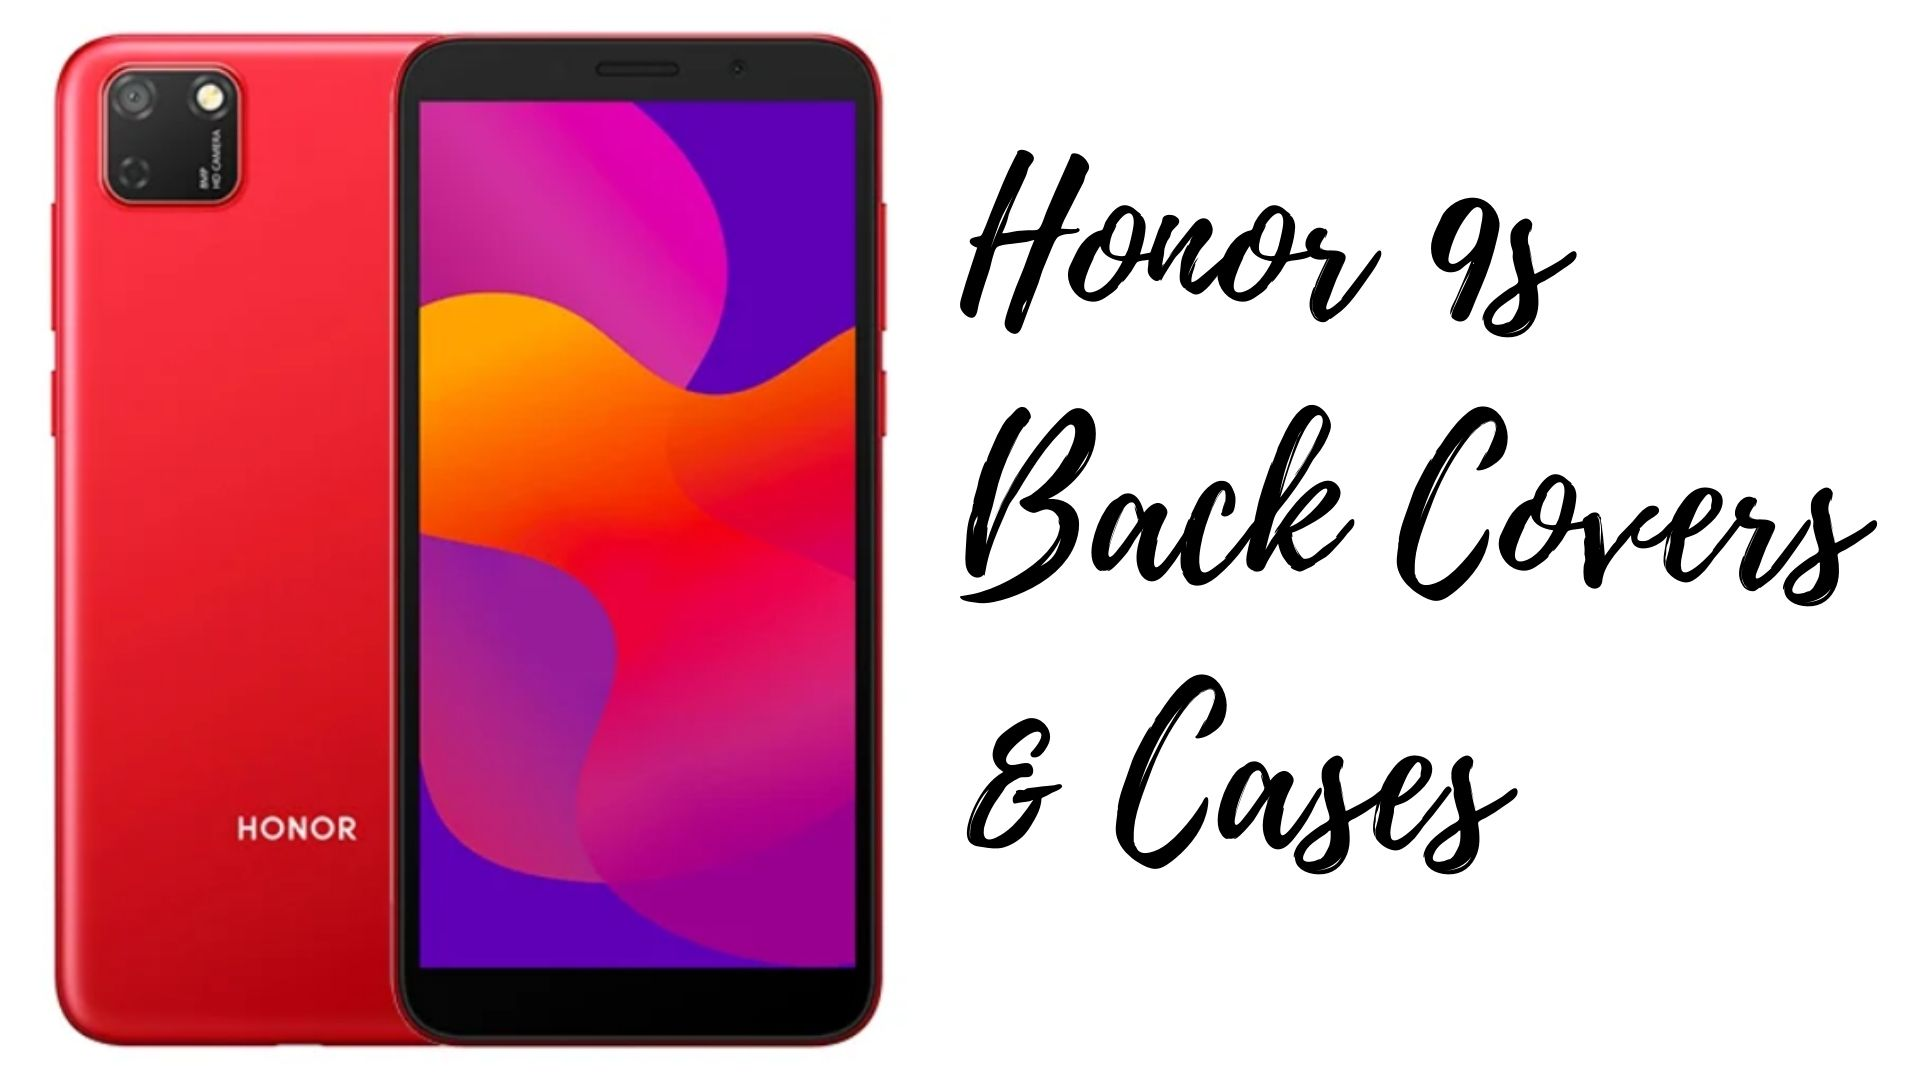 Honor 9s back covers